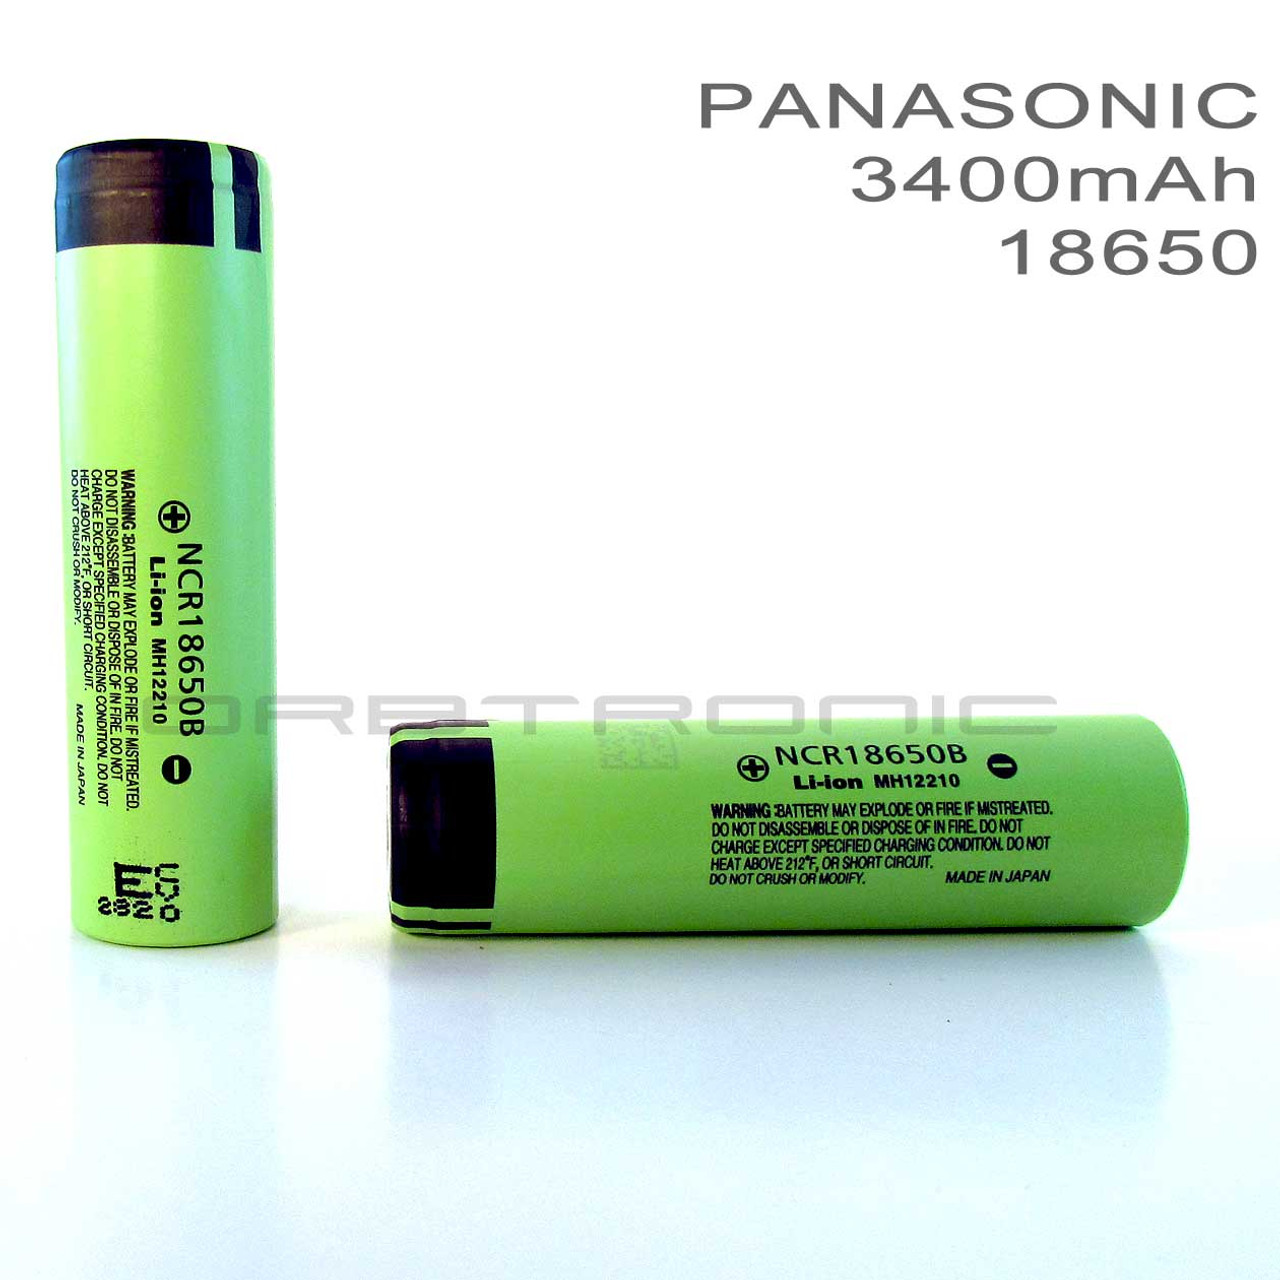 18650 Li Ion Battery Charger And Panasonic Ncr18650b